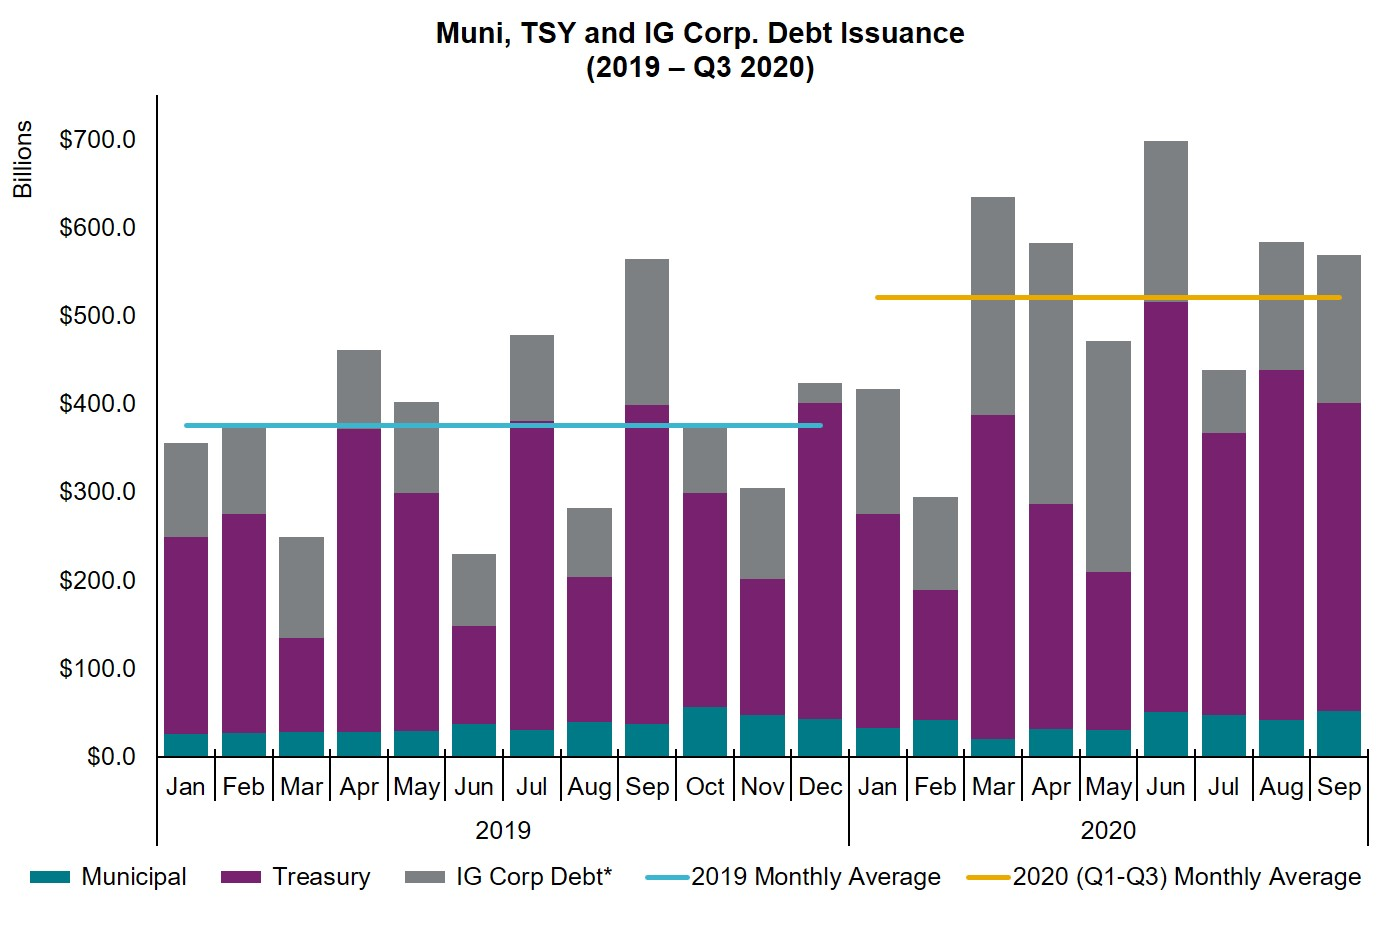 Bond issuance through September 2020